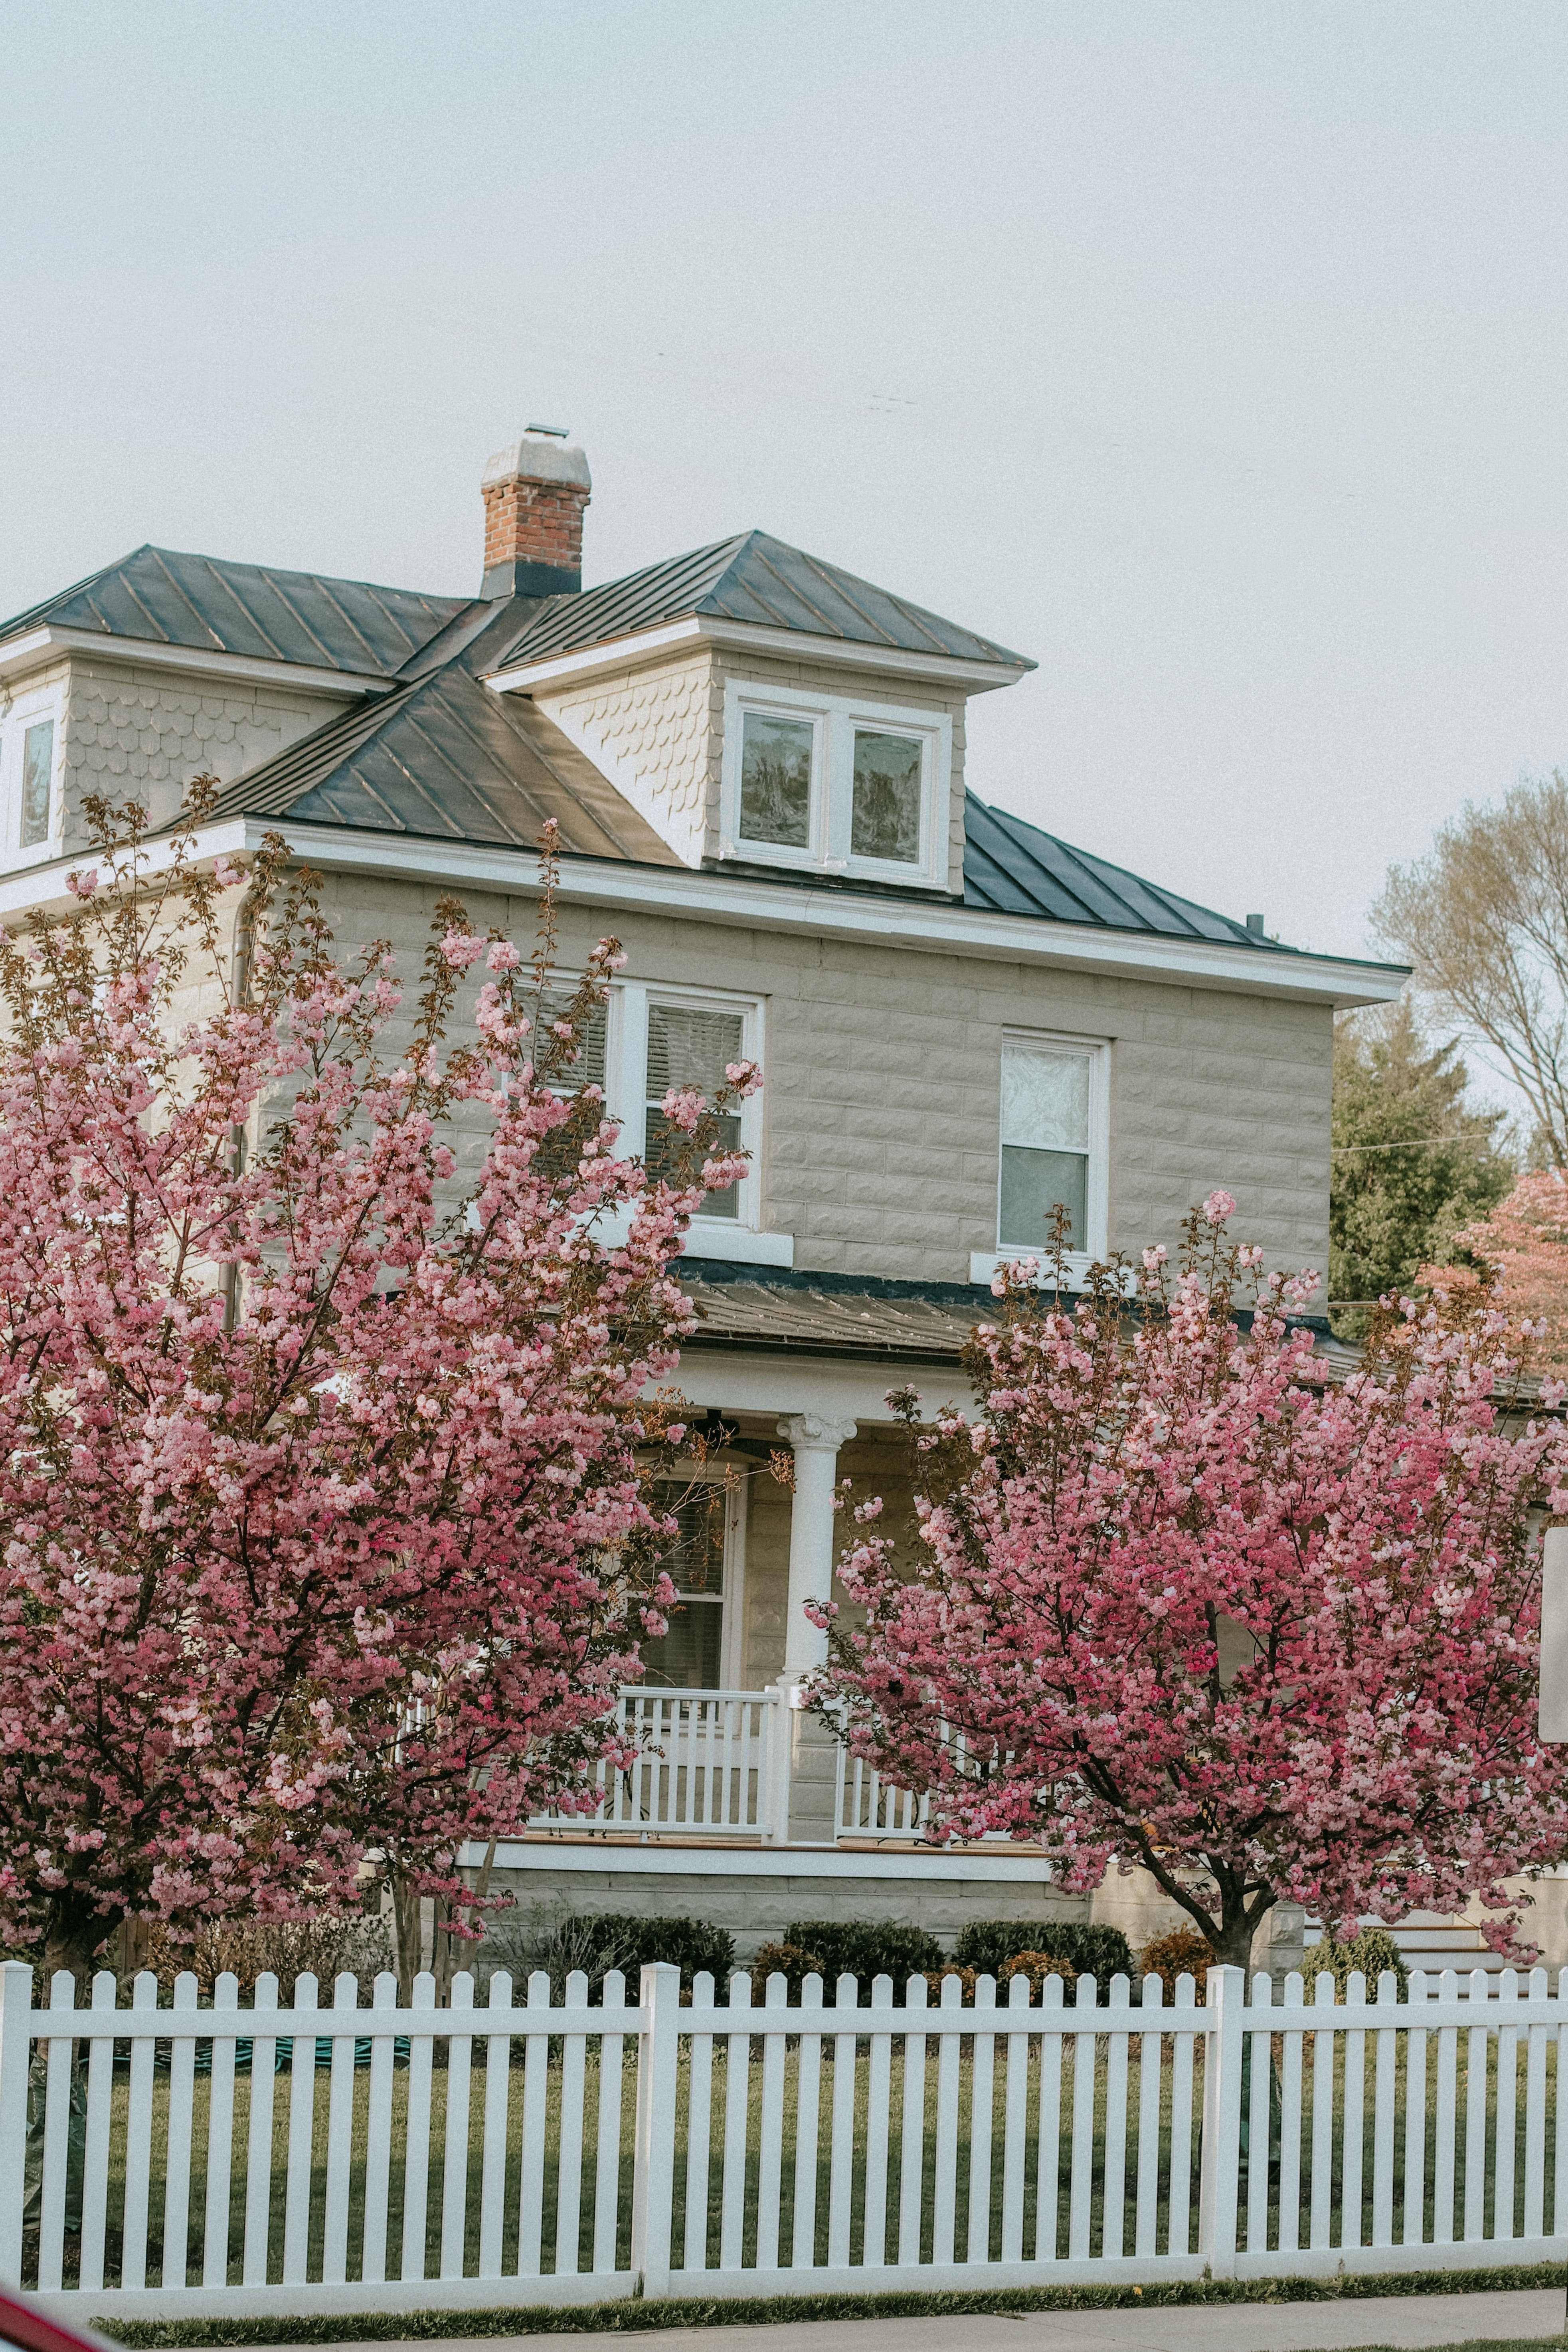 Back in Virginia—such a lovely place compared to Eastern Europe | Source: Pexels